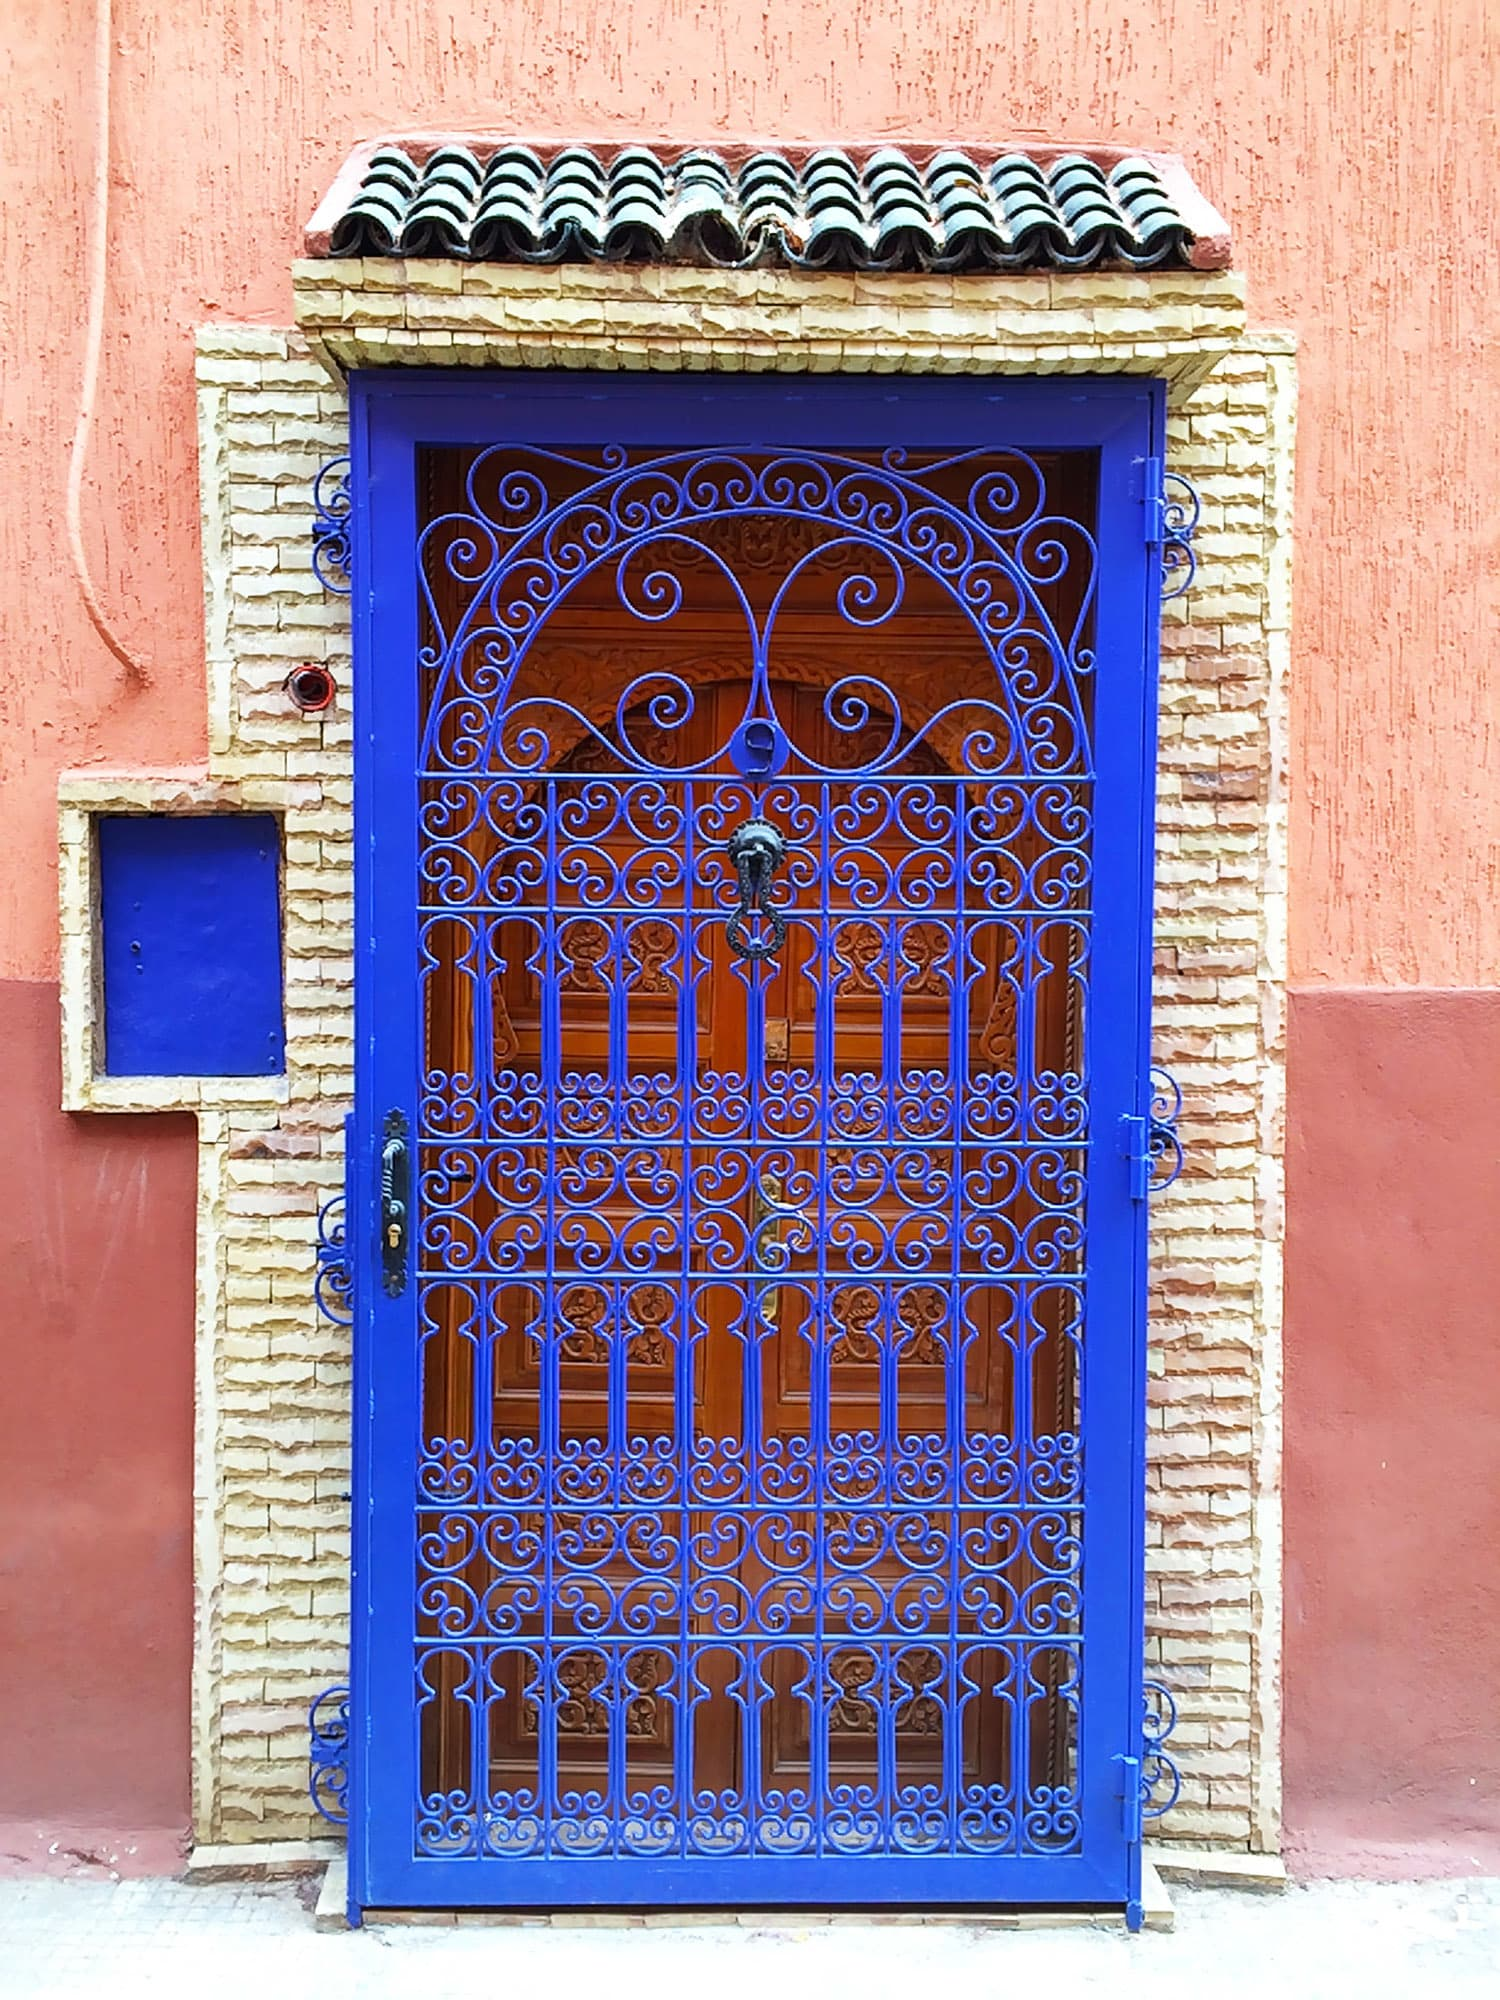 A colourful door in an alley.